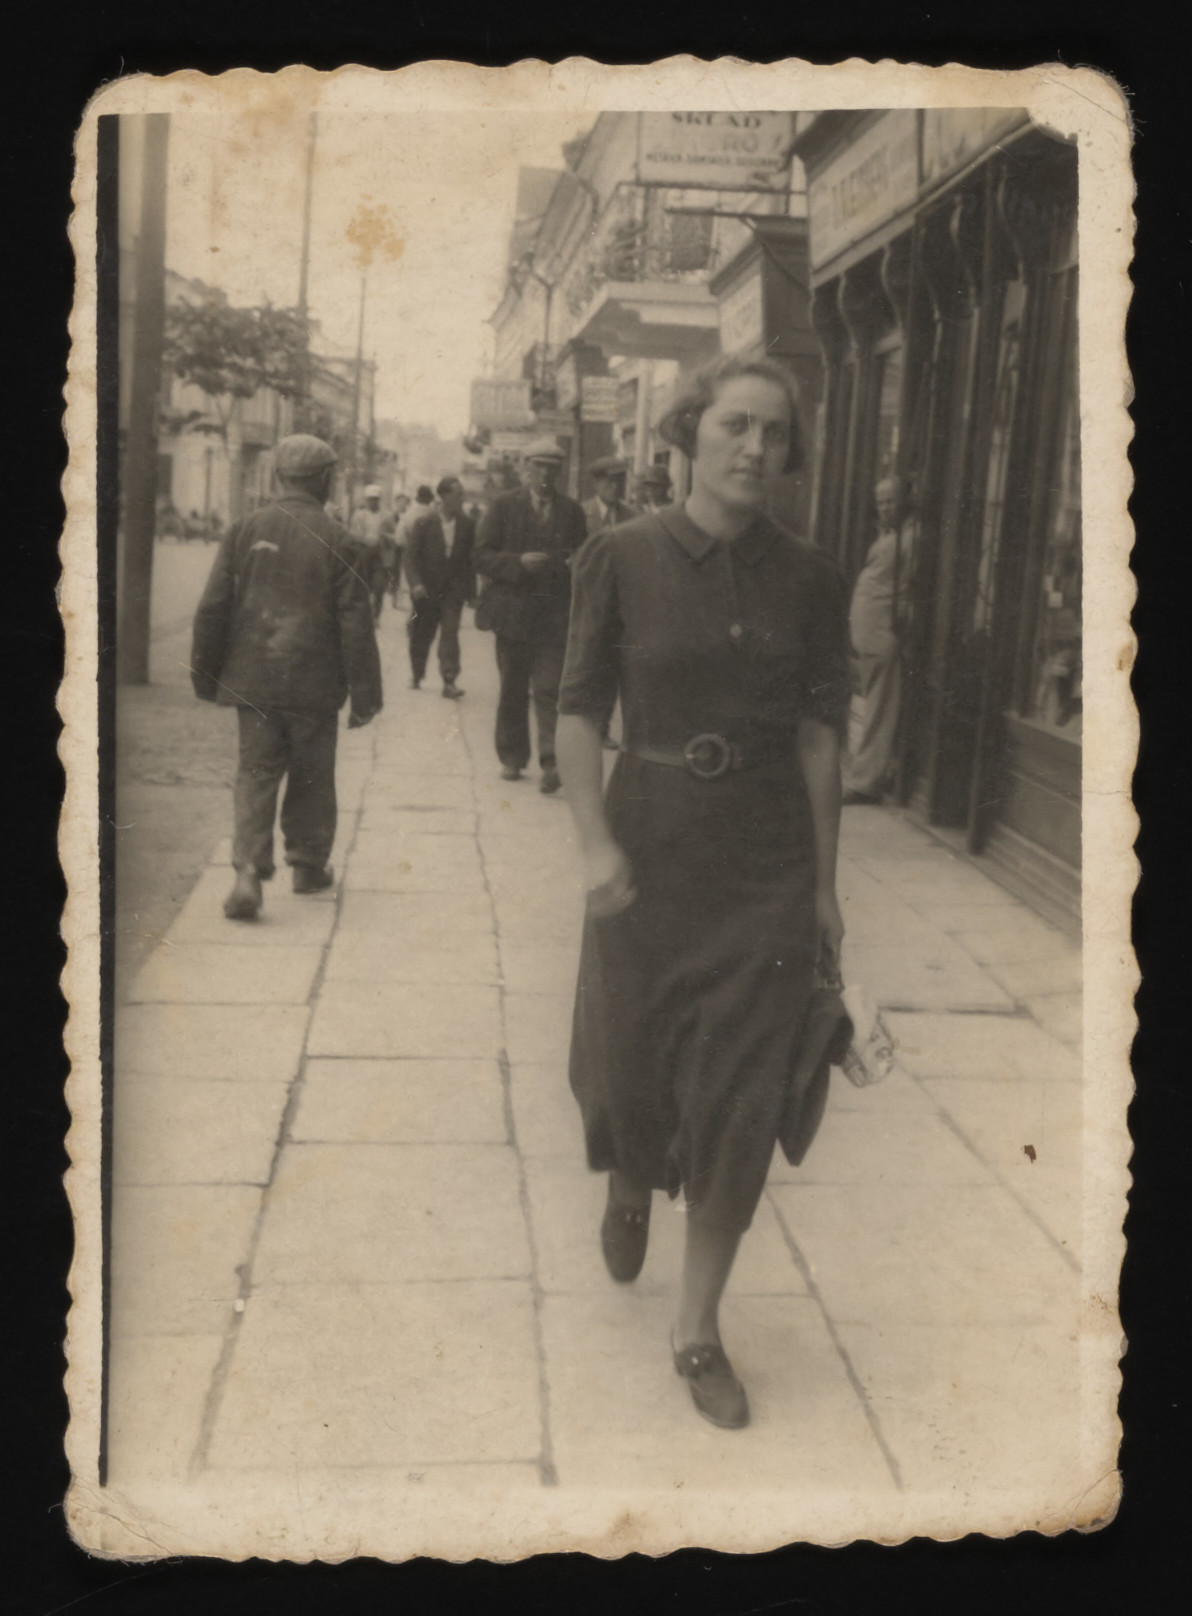 Rywka Gruber (aunt of the donor) walks down a street.  She was killed shortly after the German invasion of Eastern Poland in 1941.